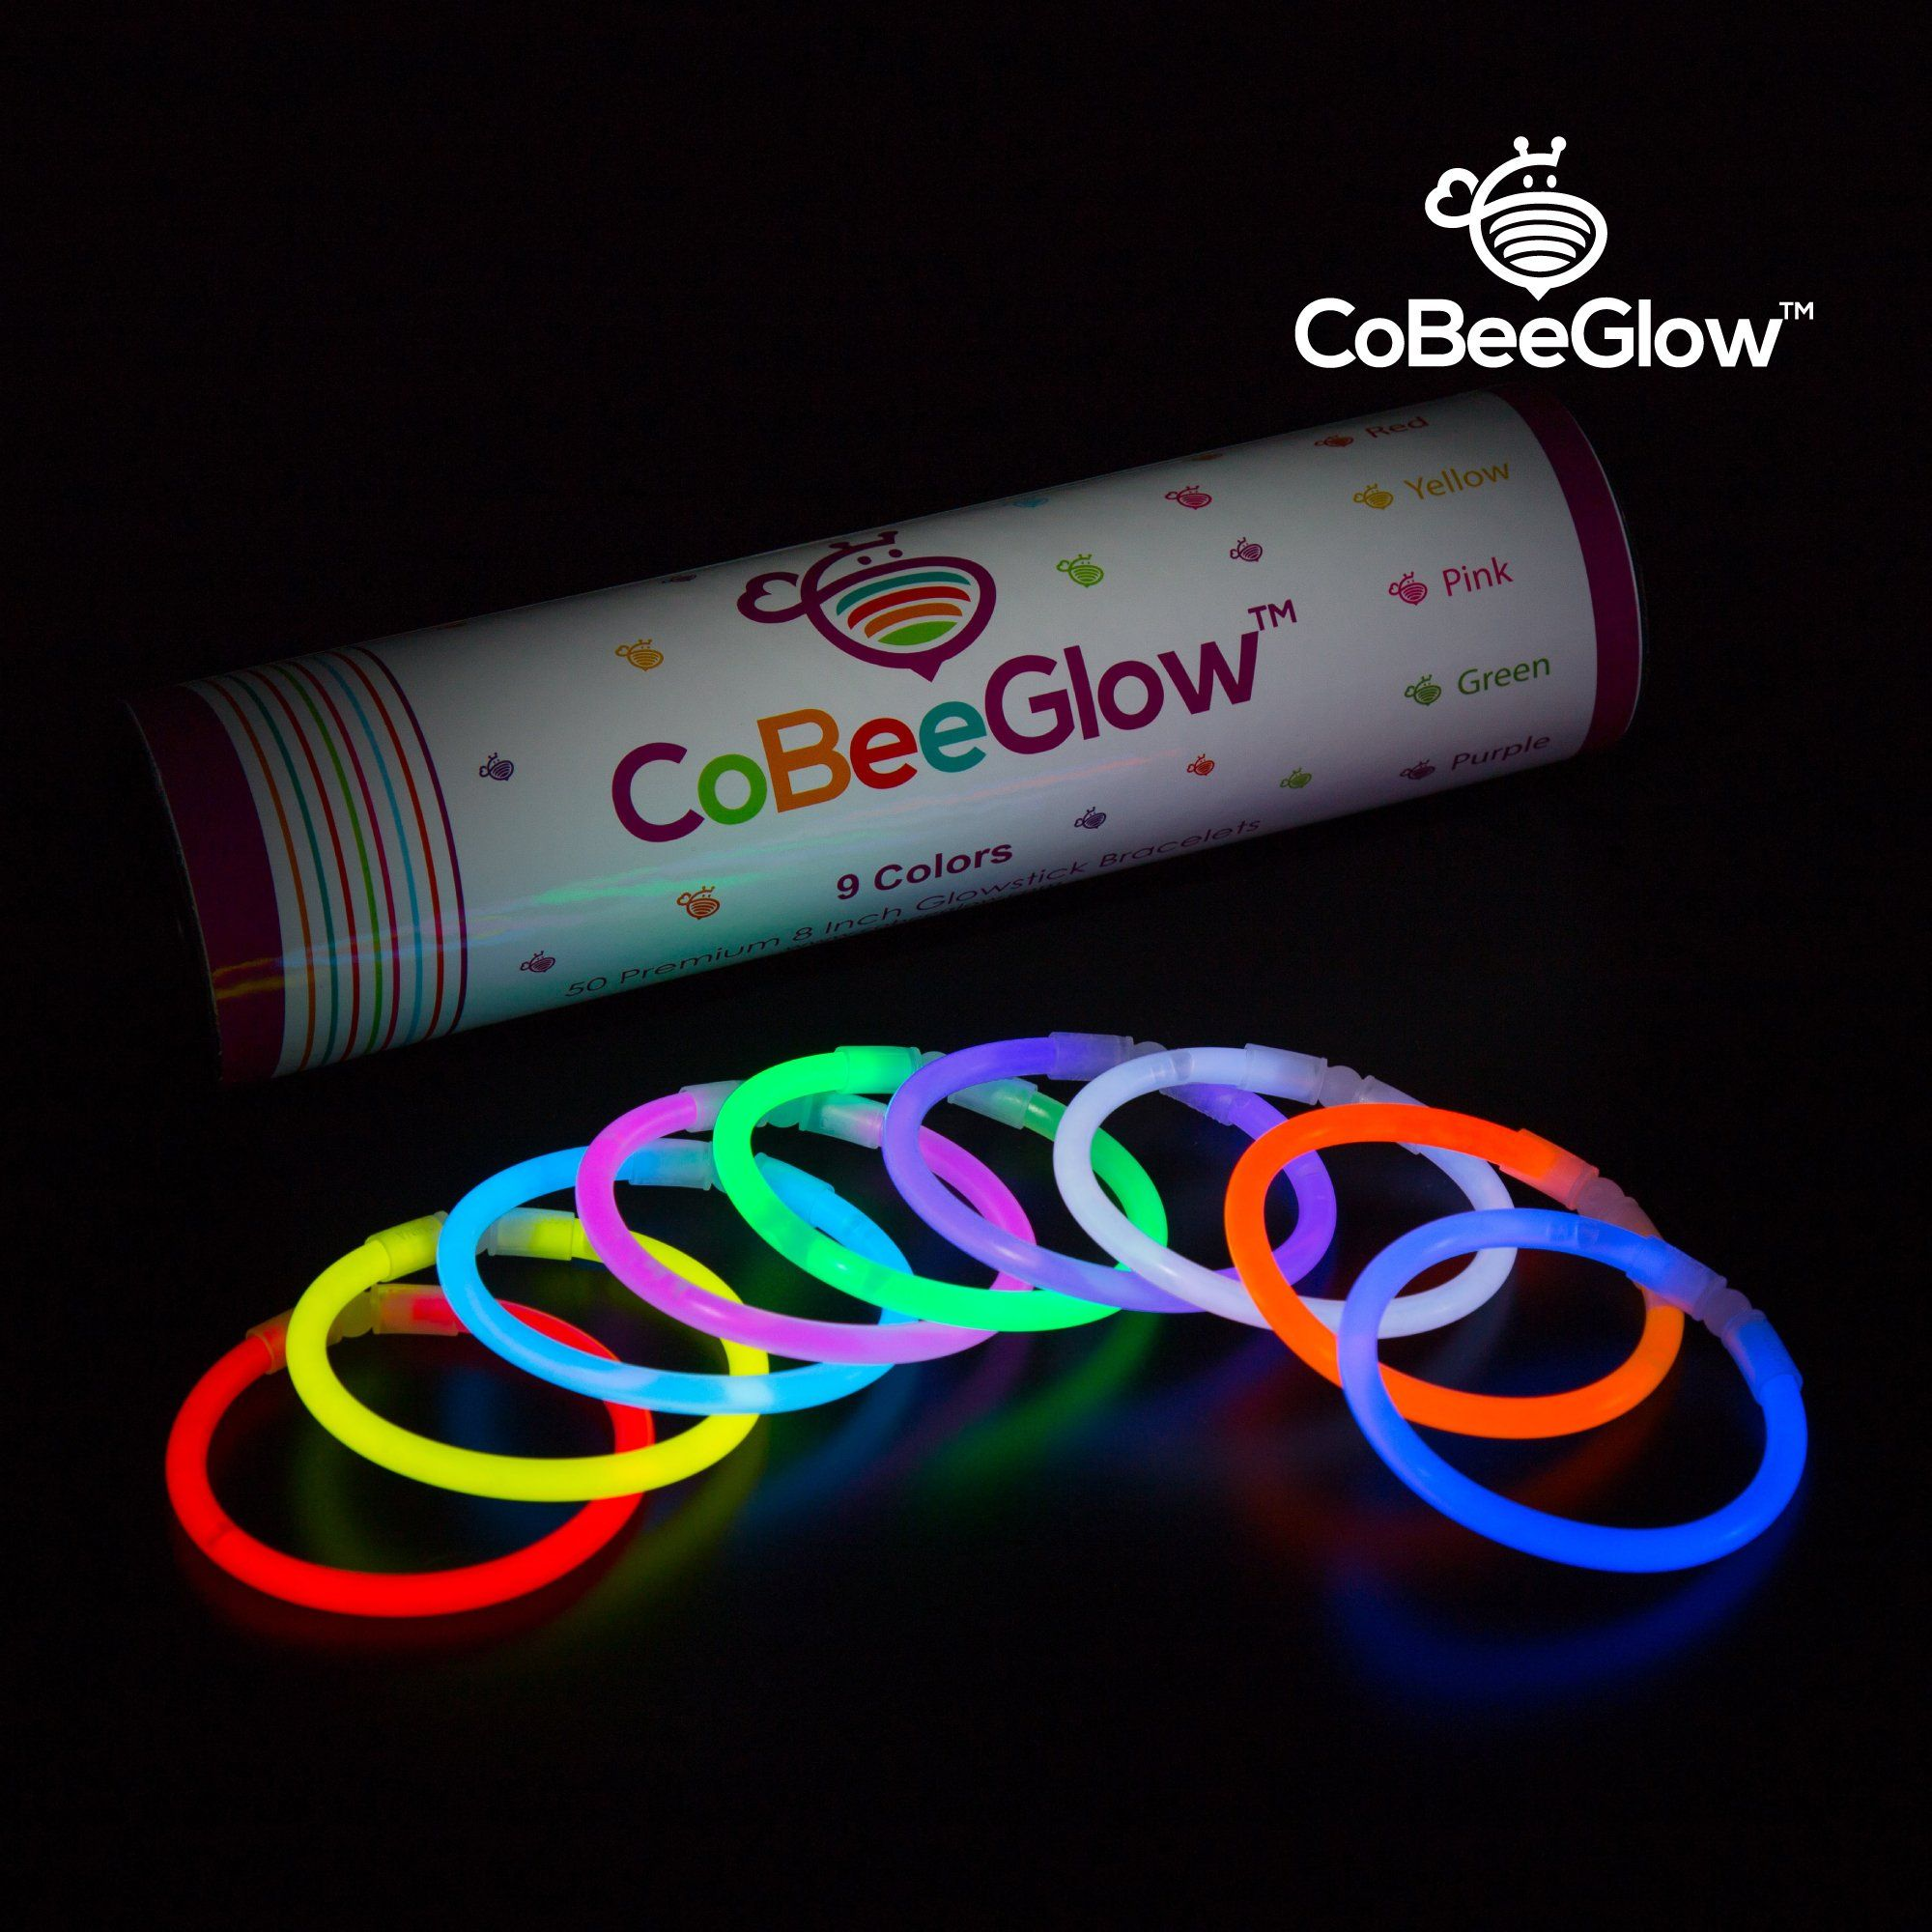 67 Connectors for Glow Necklace 250 Glow Sticks Triple Butterfly Bracelets and Luminous Glasses Bulk Pack of 567 Glowing Sticks 250 Connectors Party Favors for Kids//Adults Flower Balls